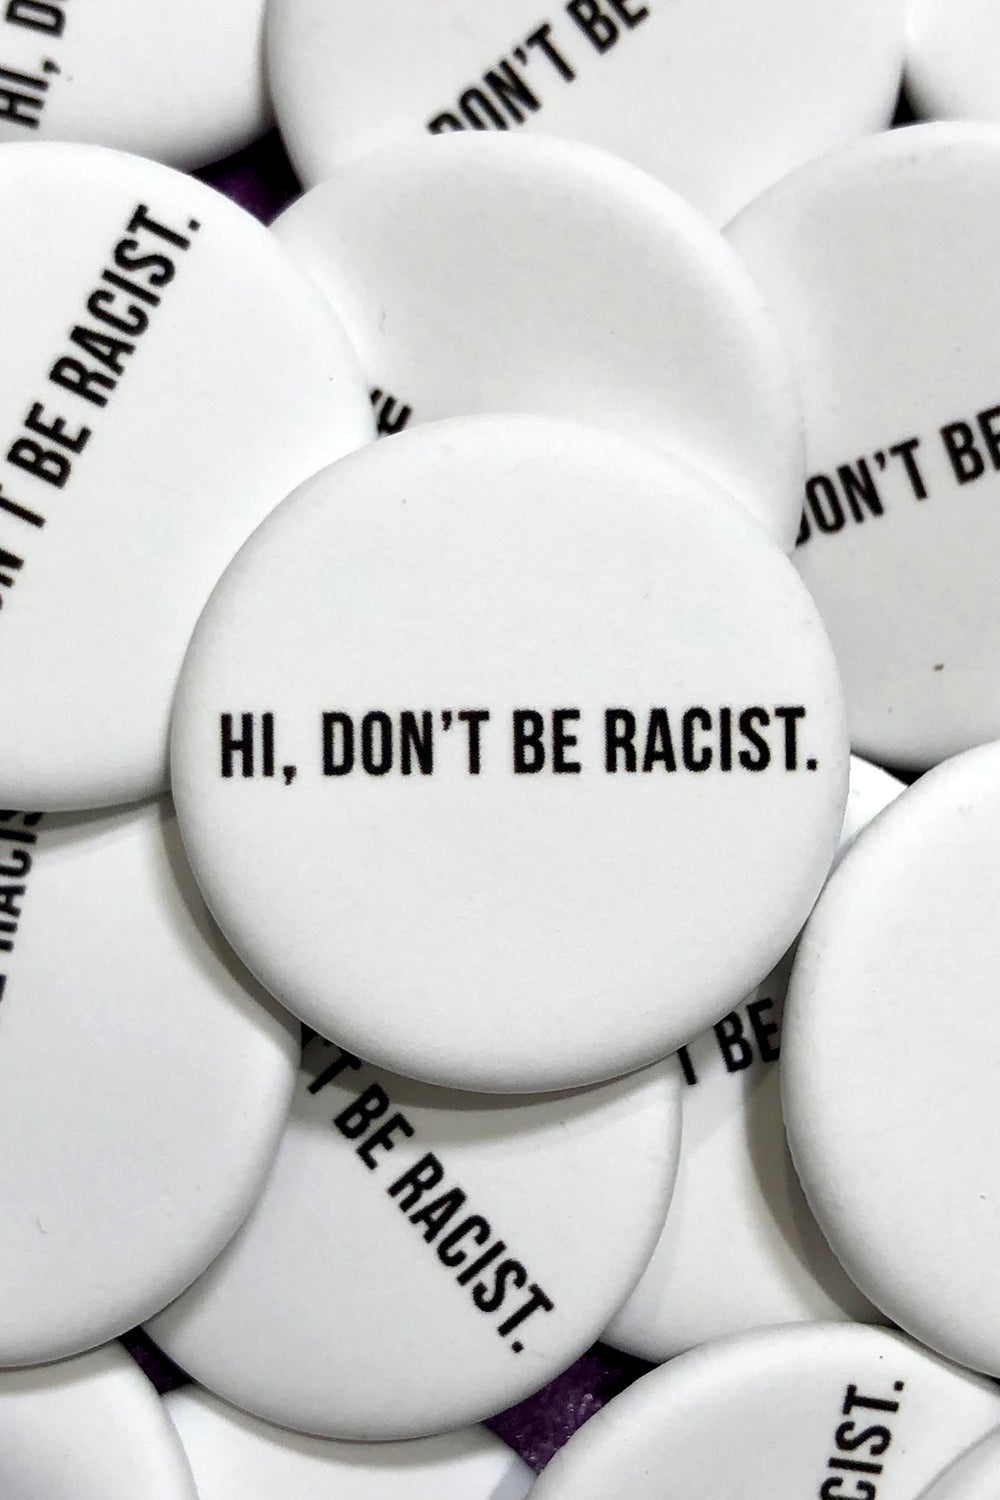 DON'T BE RACIST BUTTON